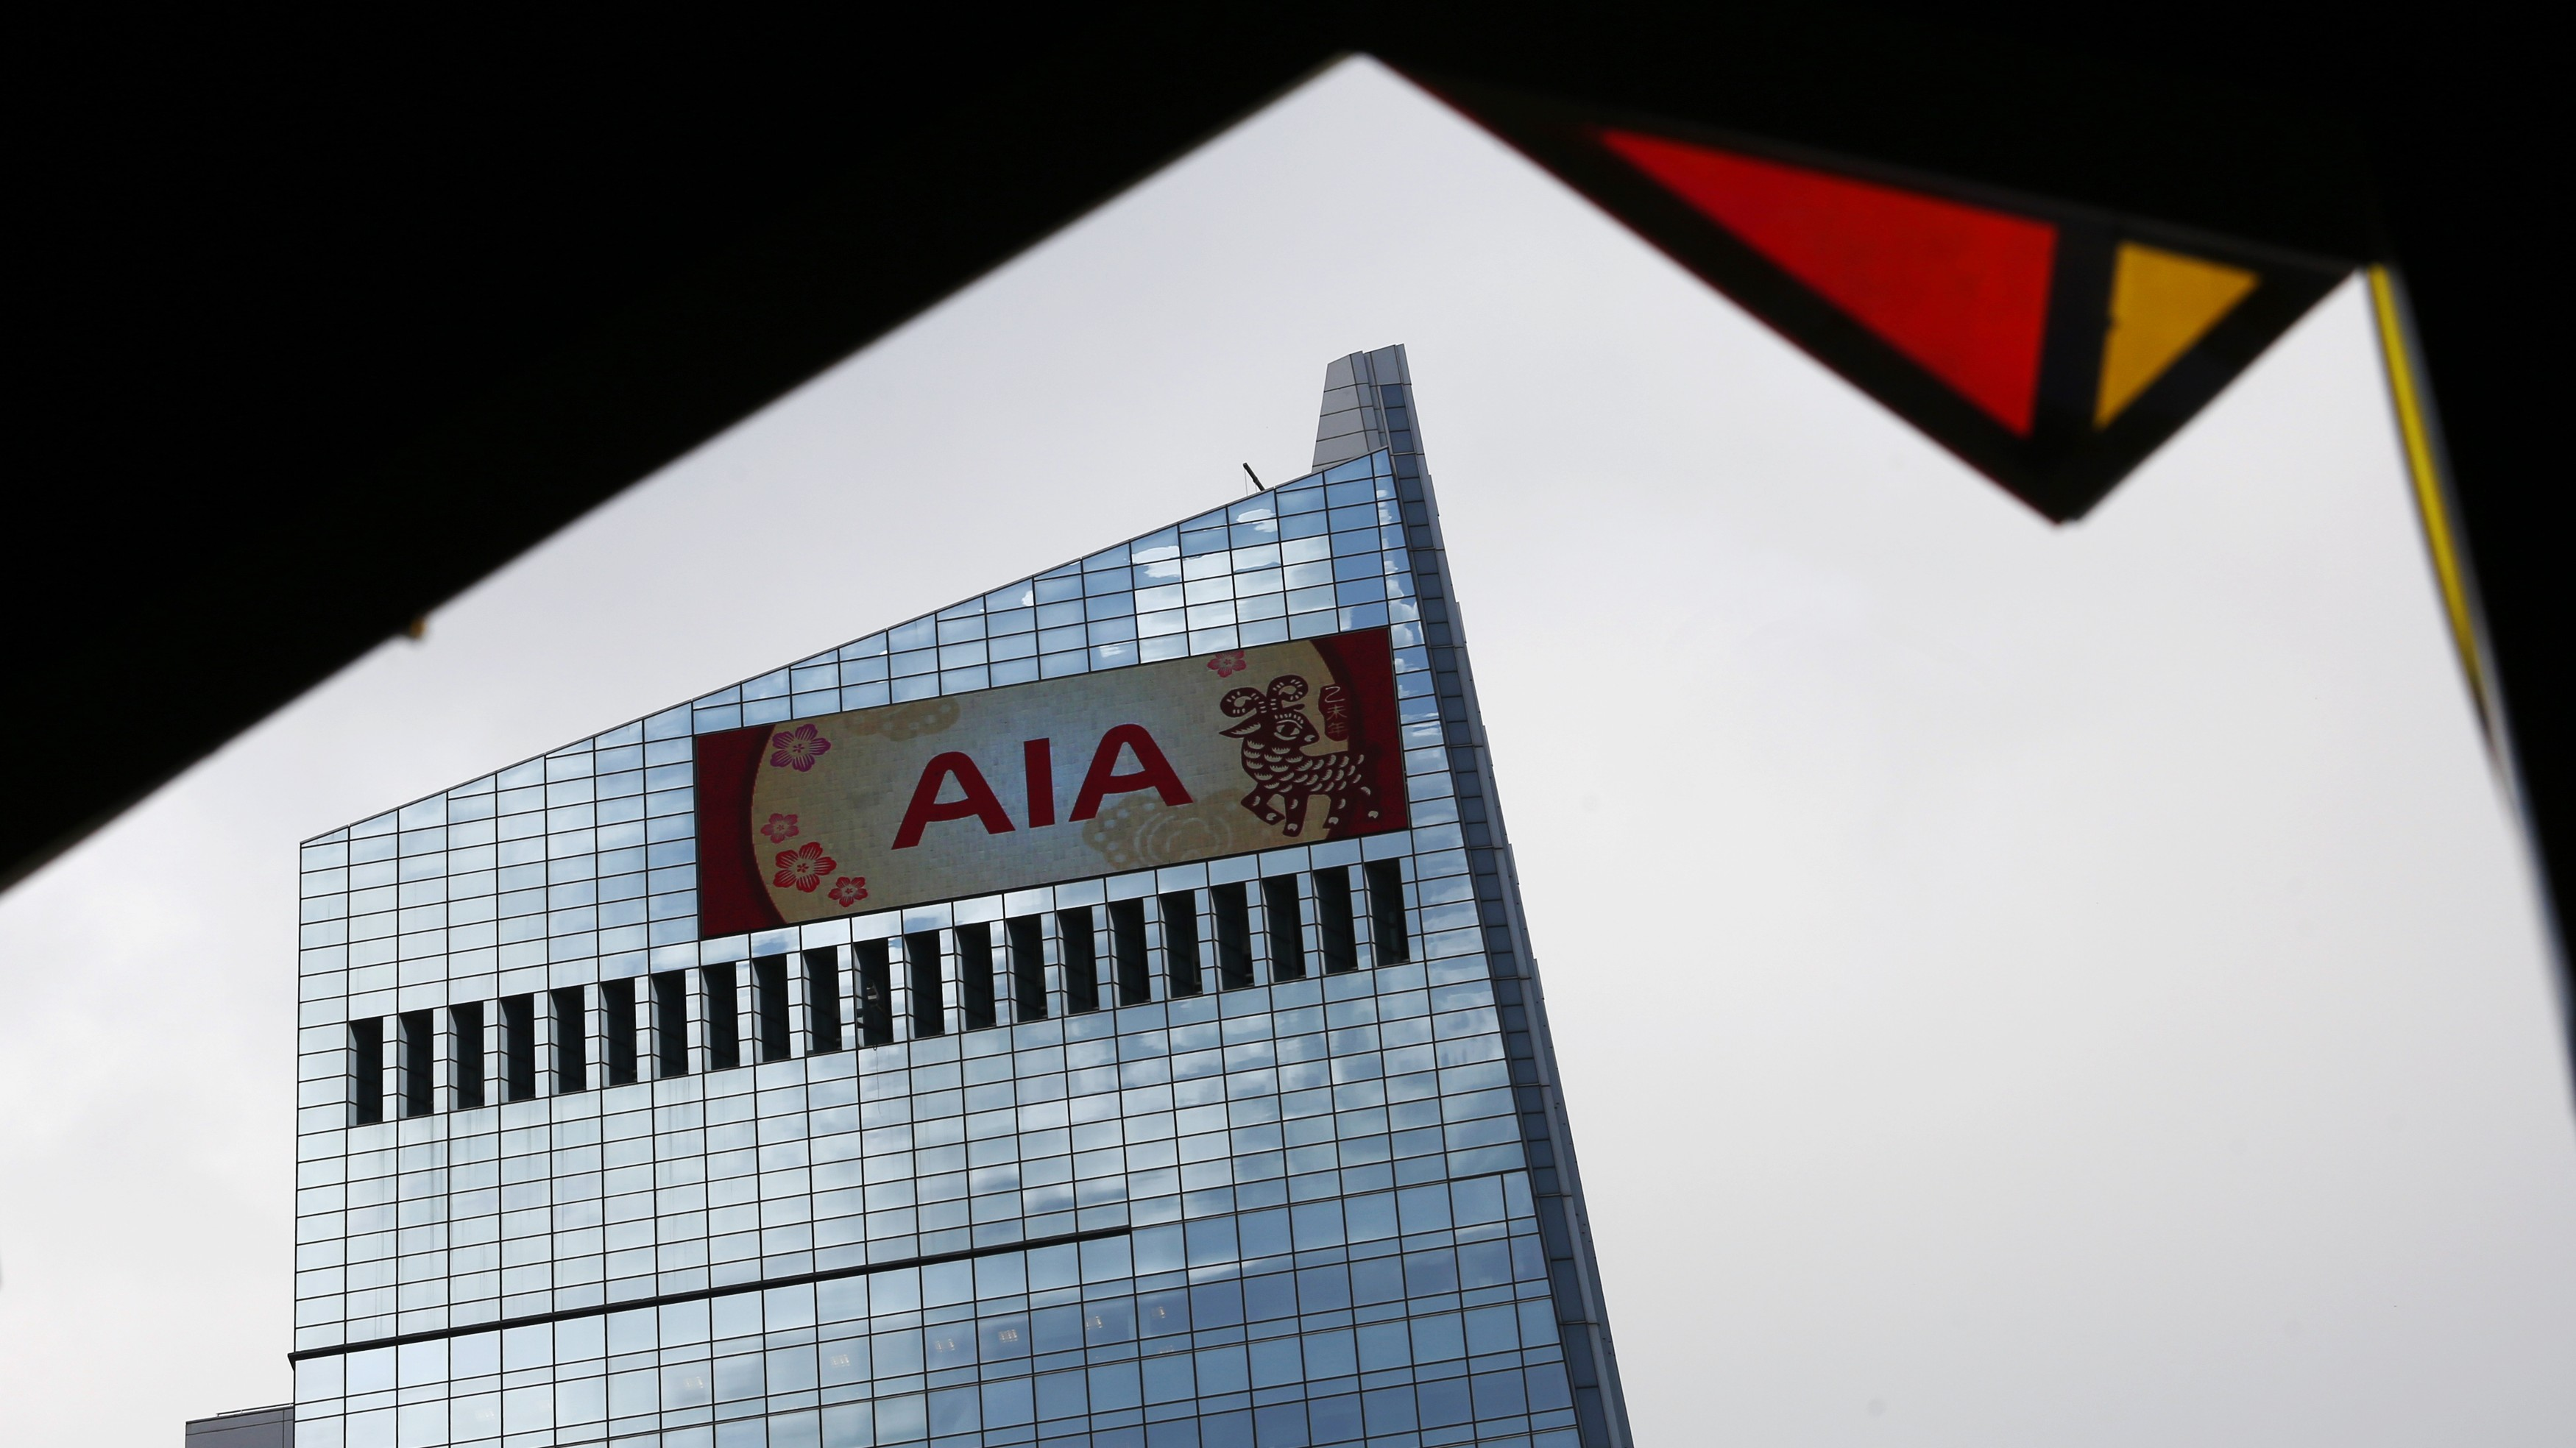 The company logo of AIA and Chinese New Year illustrations are seen on a panel on the AIA Central building in Hong Kong February 26, 2015. AIA Group Ltd, Asia's third-largest life insurer by market capitalisation, reported a record 24 percent annual rise in the value of new business as it reaped the rewards of an expanded China salesforce and strong growth in Hong Kong.     REUTERS/Bobby Yip  (CHINA - Tags: BUSINESS LOGO) - RTR4R809